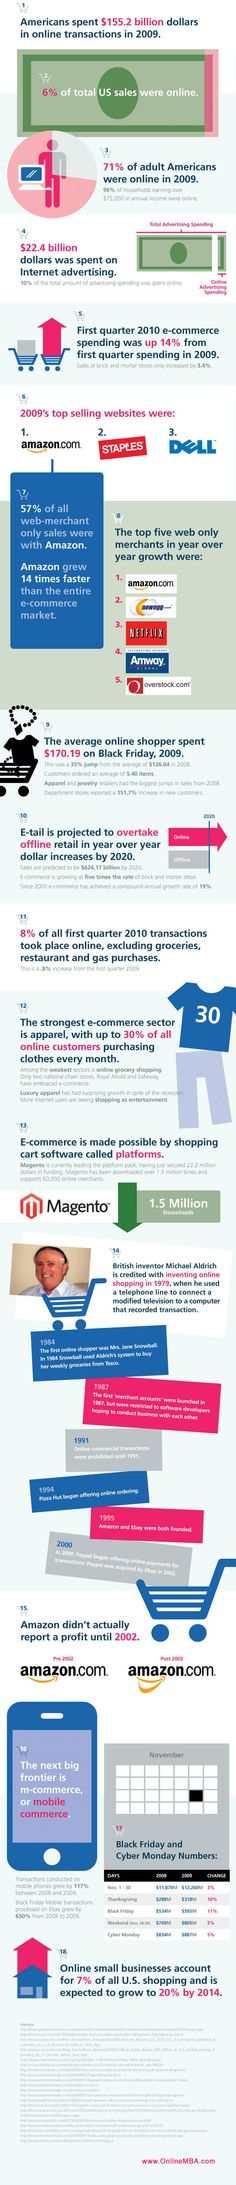 An Overview of #Ecommerce